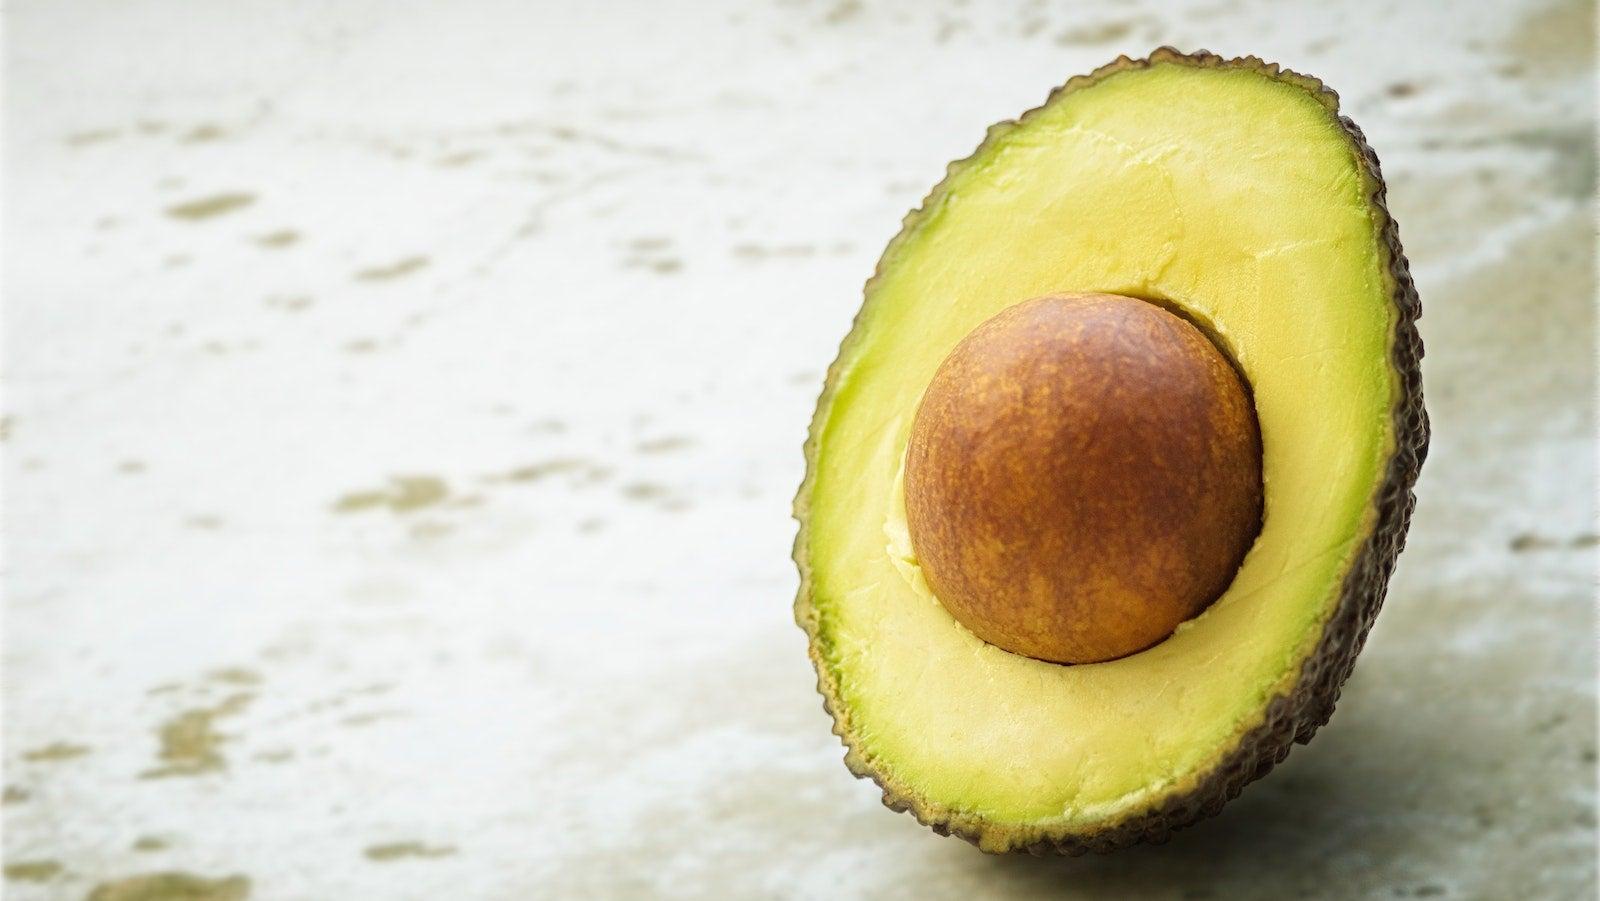 PSA: Fatter, Rounder Avocados Contain Less Fruit